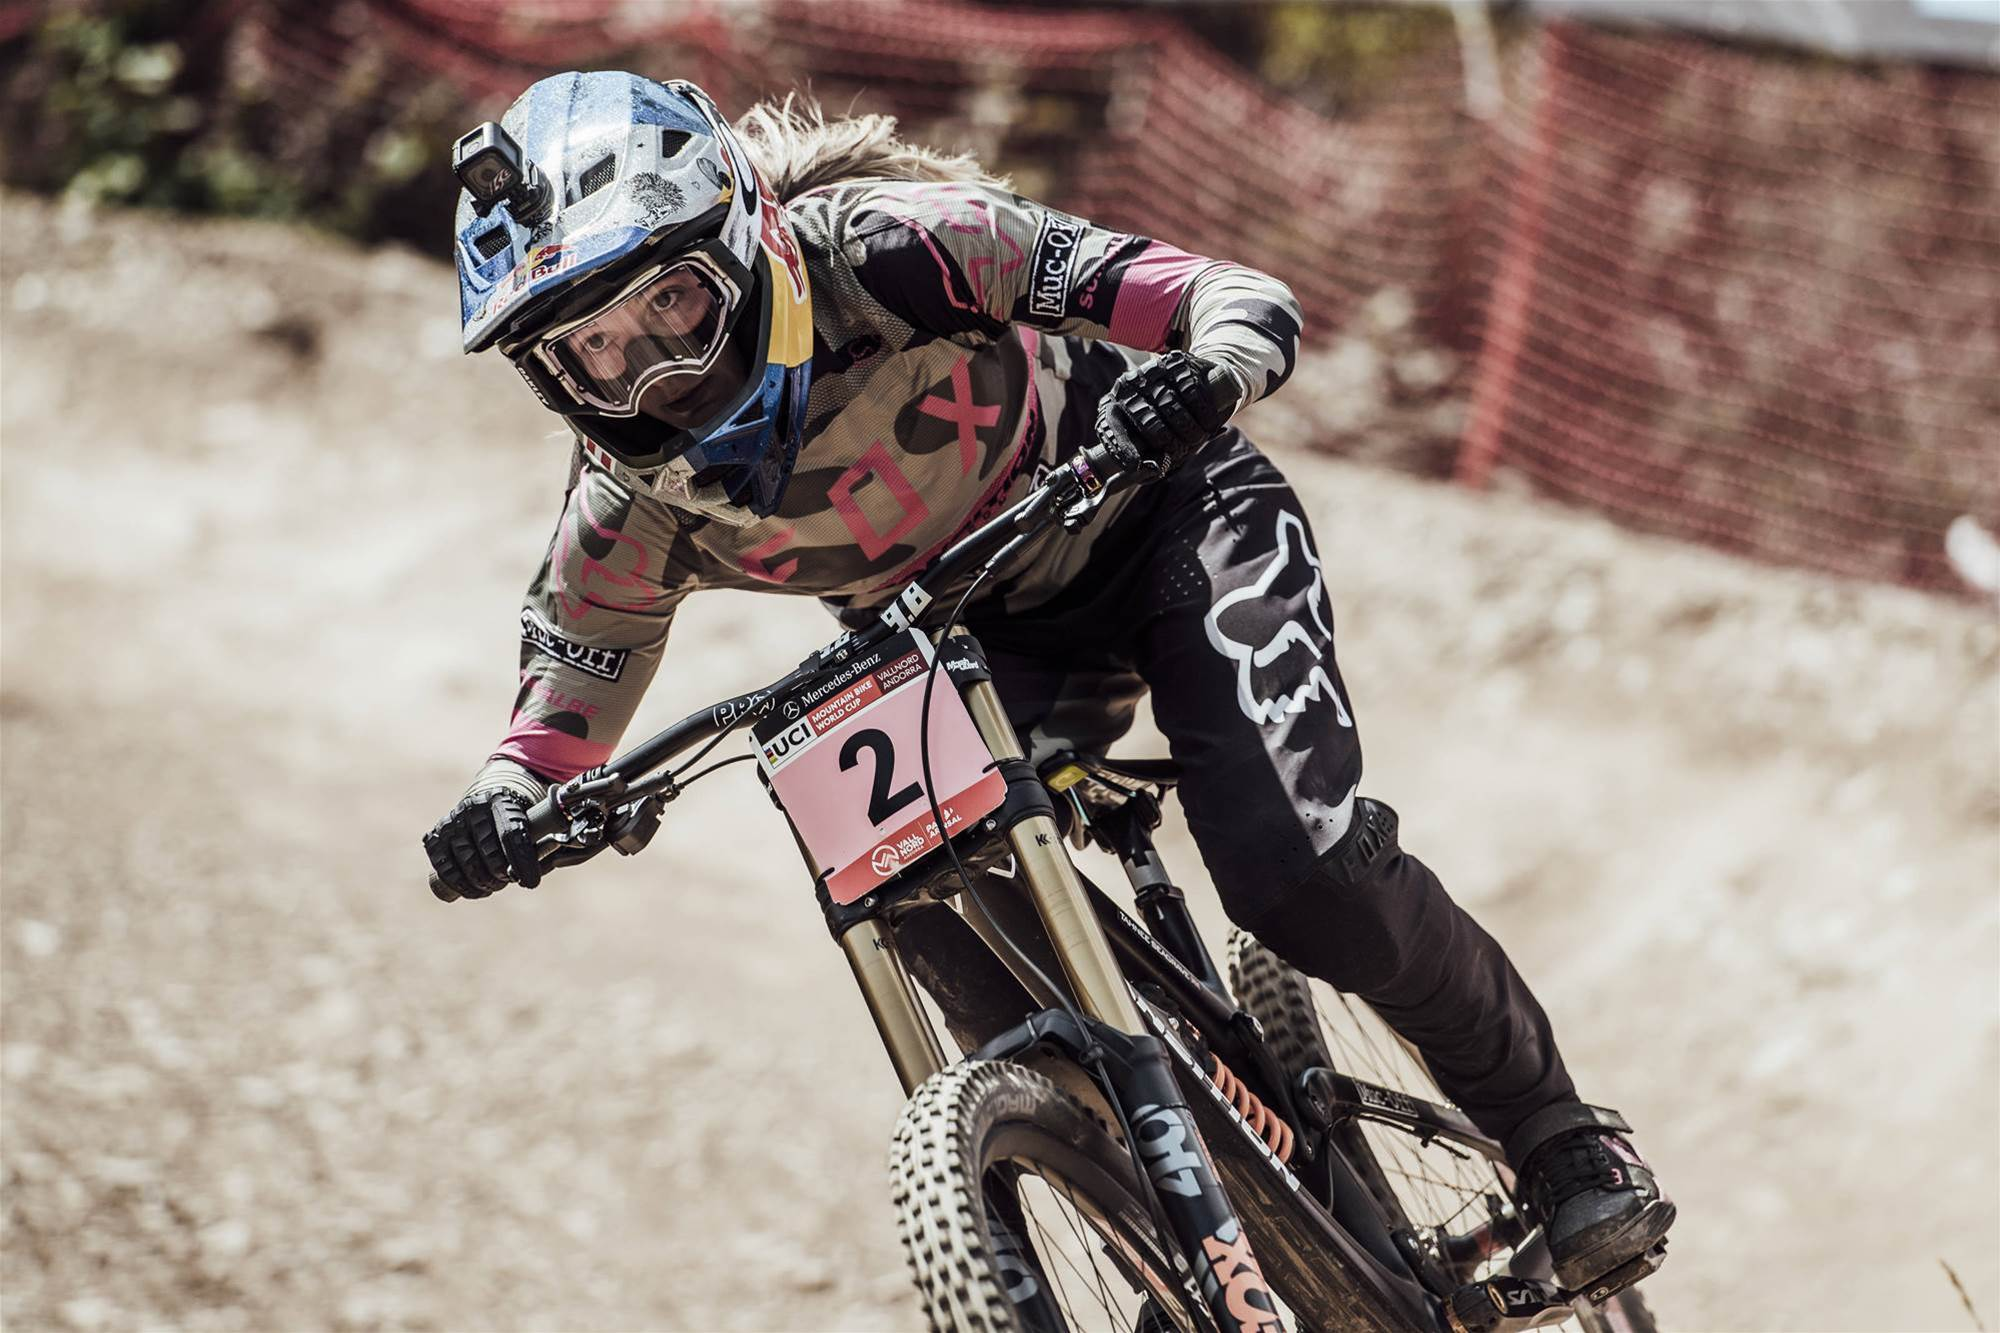 Seagrave and Vergier rule Andorra